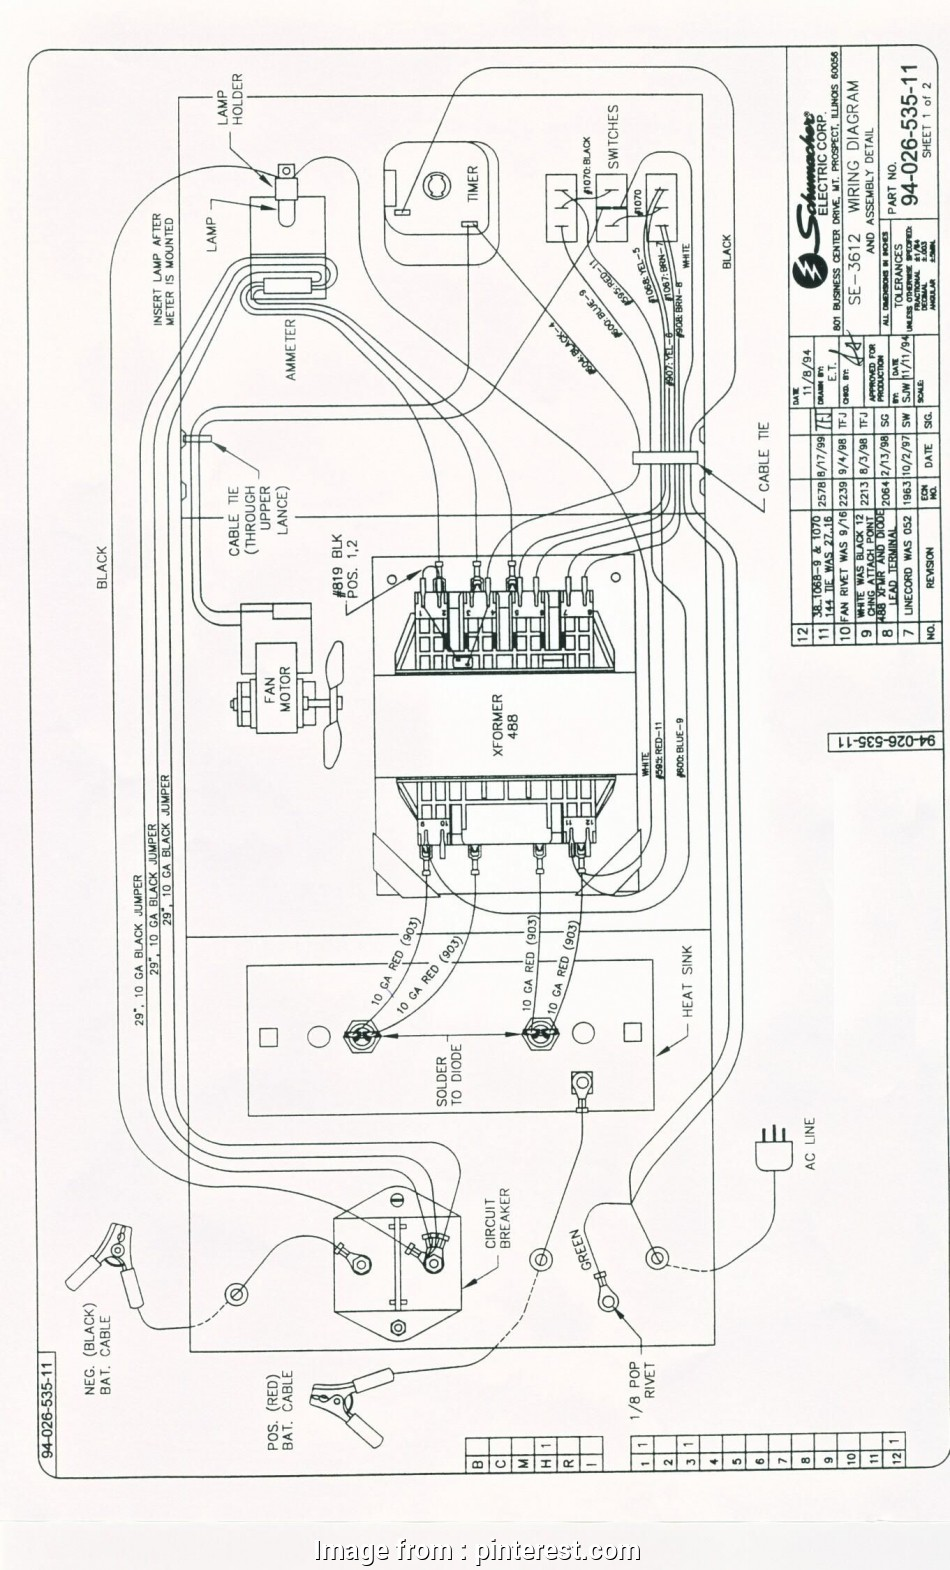 automotive battery charger wiring diagram schumacher battery charger wiring diagram, charger, Pinterest 19 Popular Automotive Battery Charger Wiring Diagram Ideas